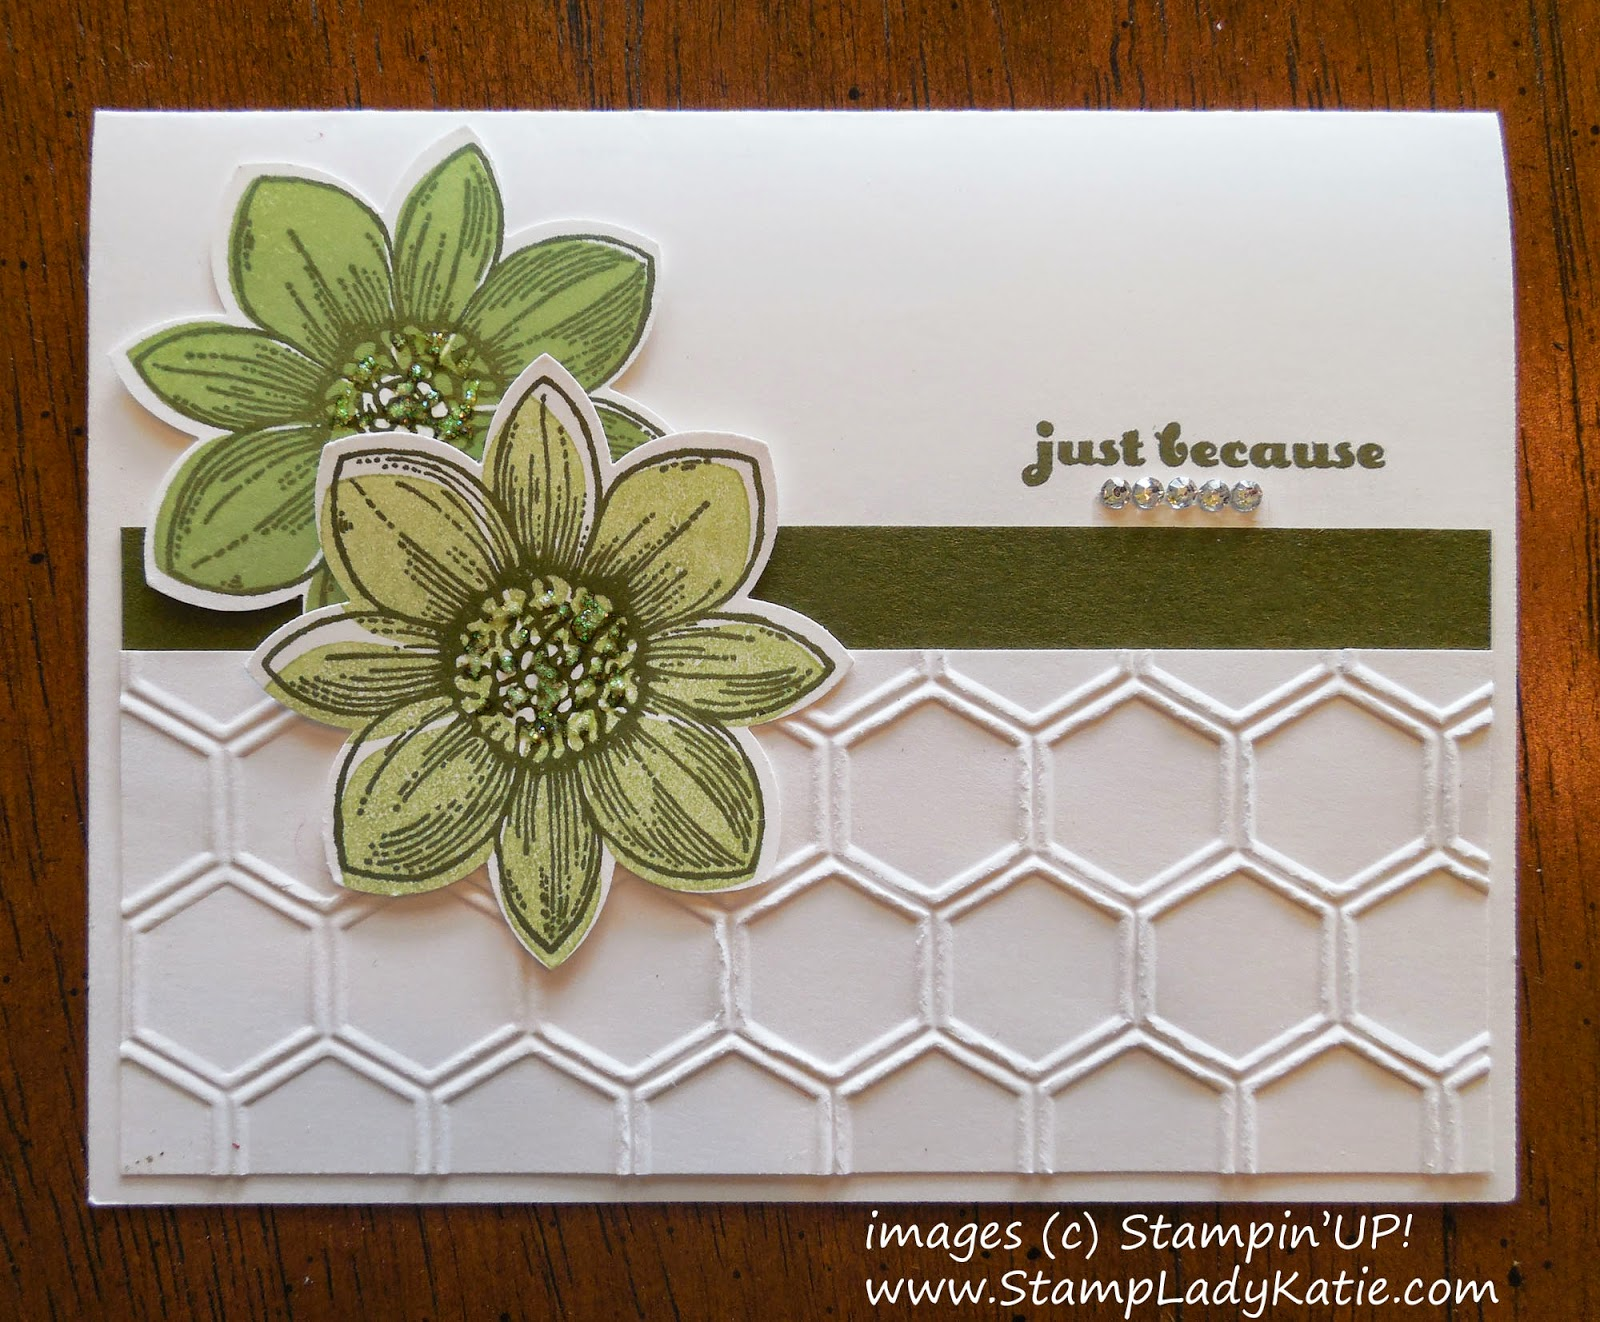 Card made with Stampin'UP!'s Petal Potpourri Stamp Set and Honeycomb Embossing Folder